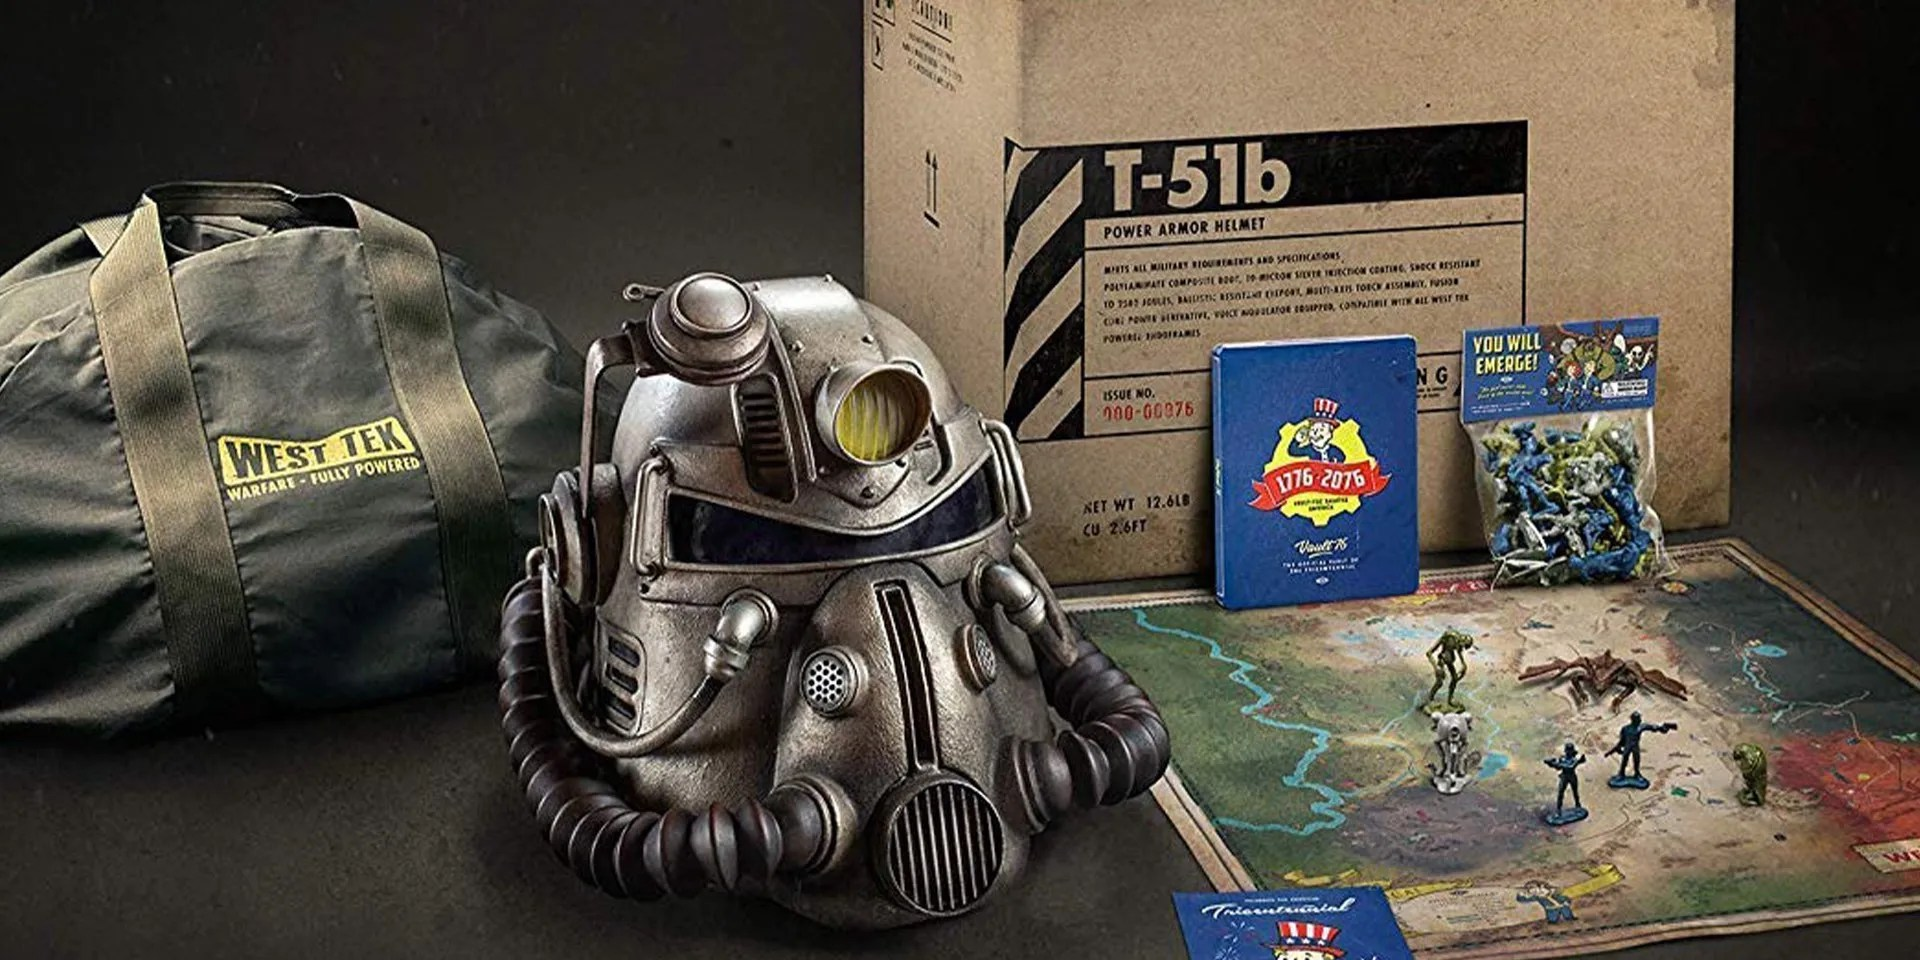 Fallout 76 CE Owners Getting Replacement Canvas Bags Amid Backlash